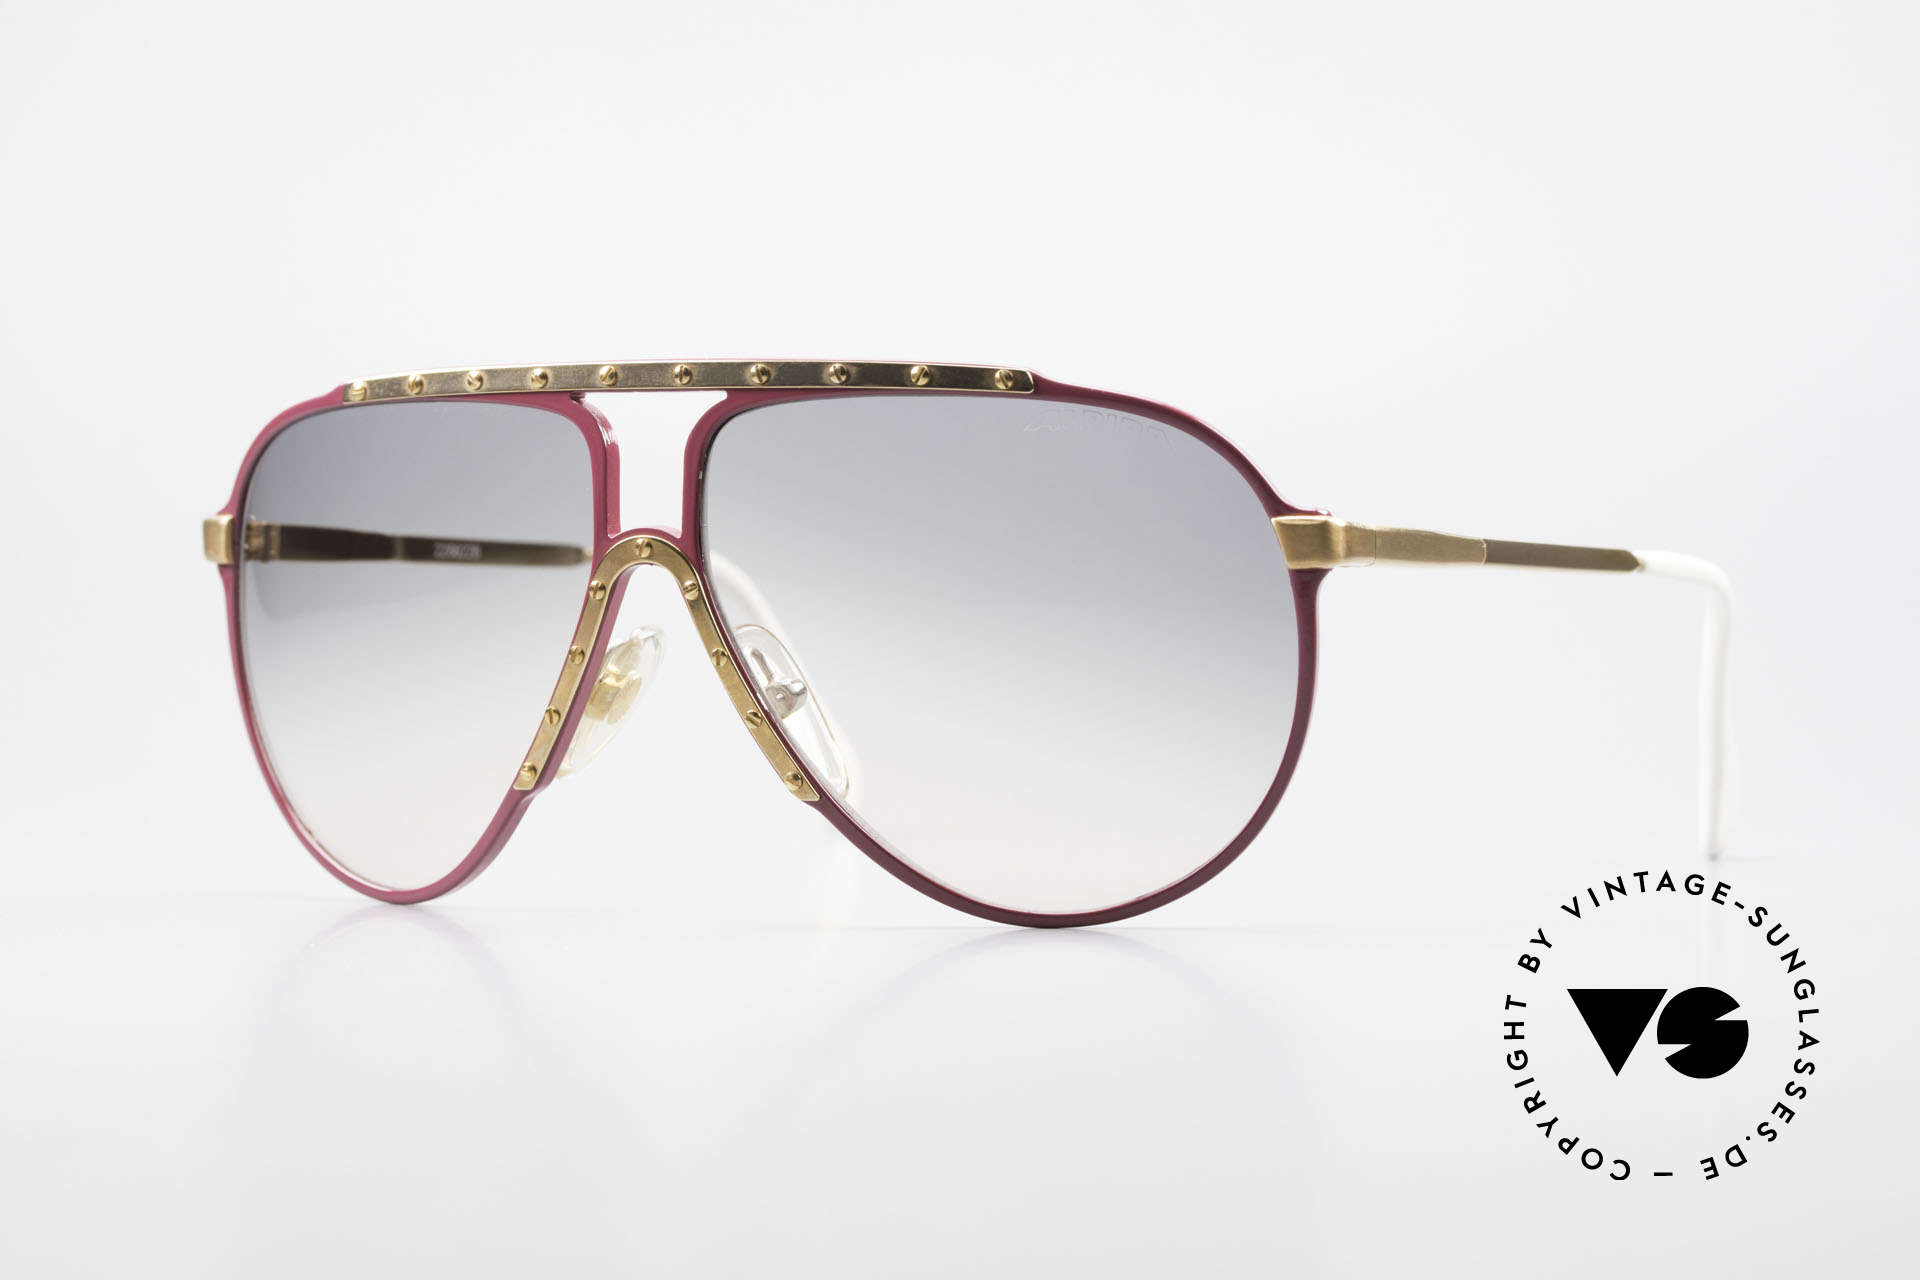 Alpina M1 Iconic Vintage Sunglasses 80s, pink Alpina M1 sunglasses in size 60°12 from 1987, Made for Women